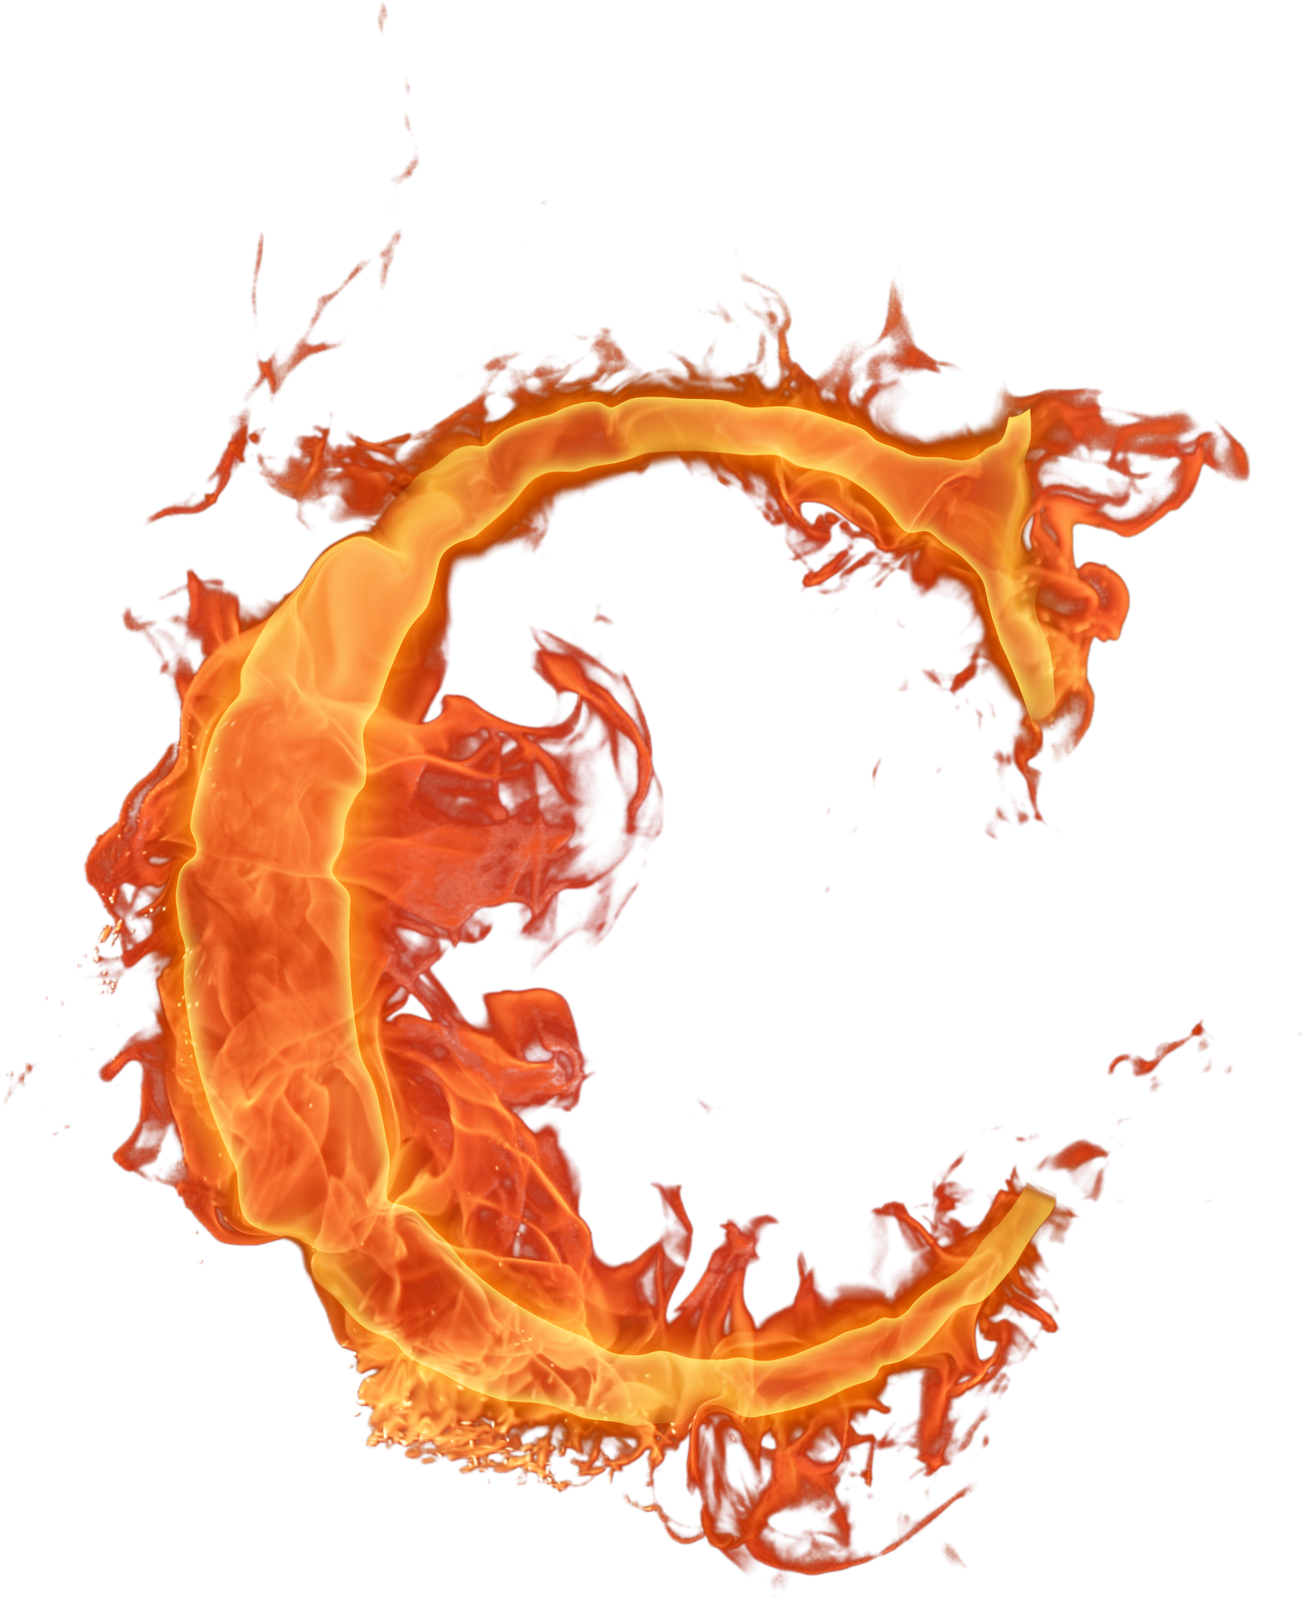 Letter clipart flame. Letras png fogo chama